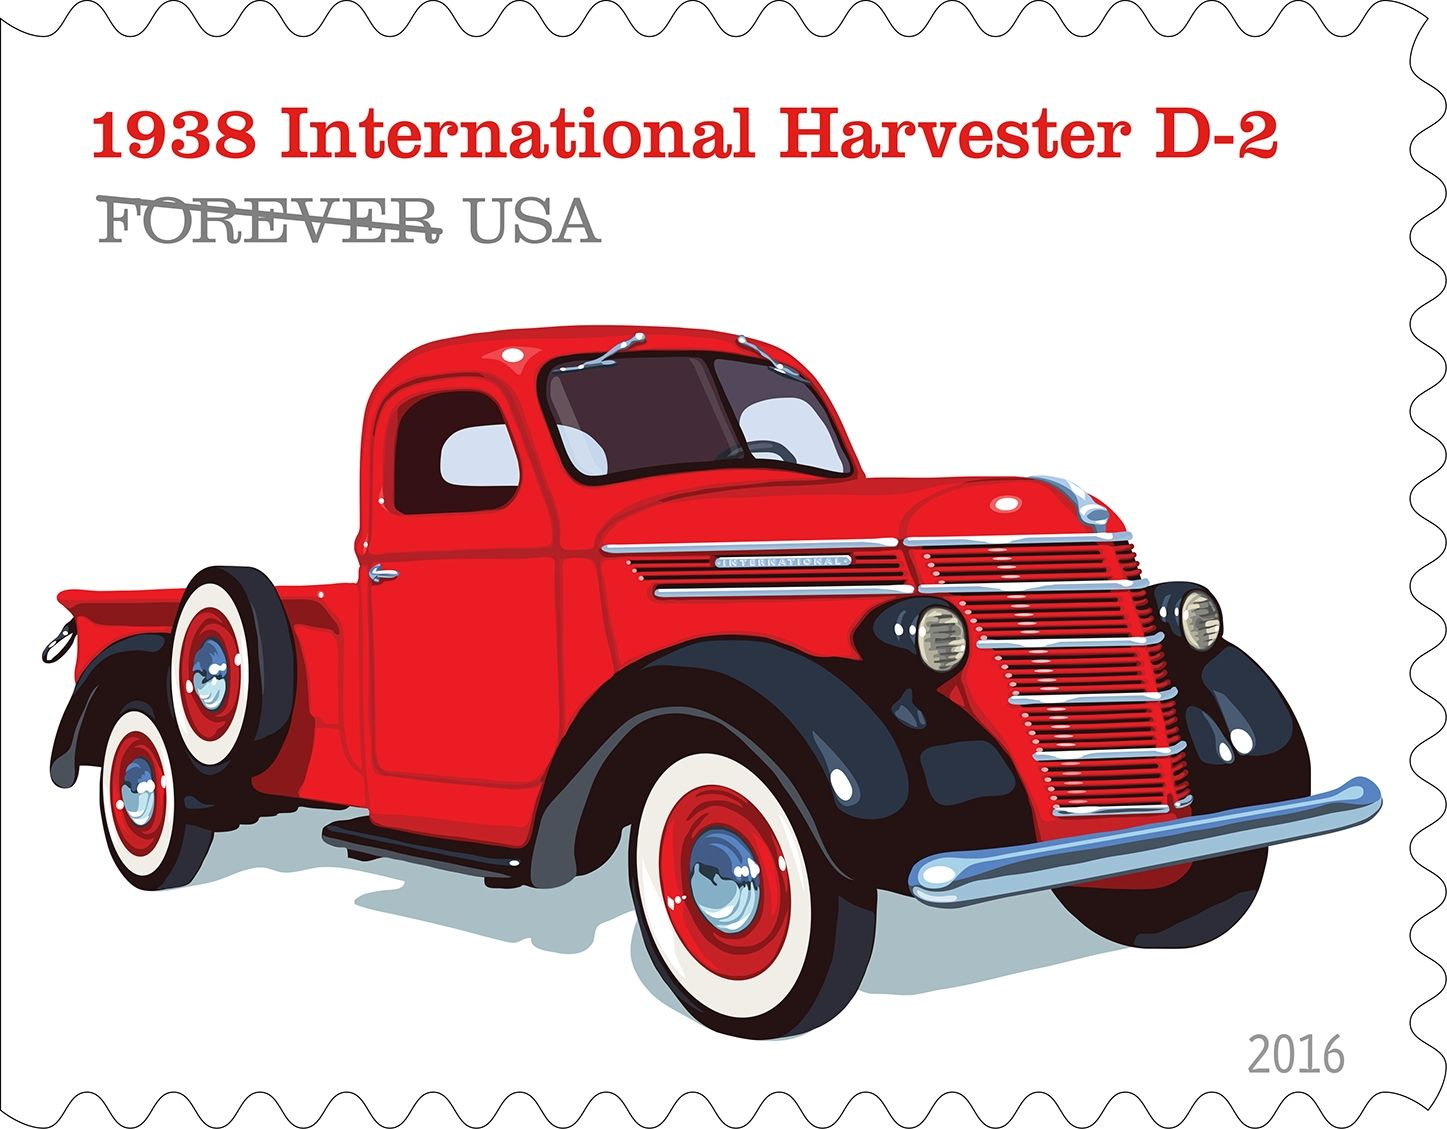 USPS Honors Work Trucks with Stamps